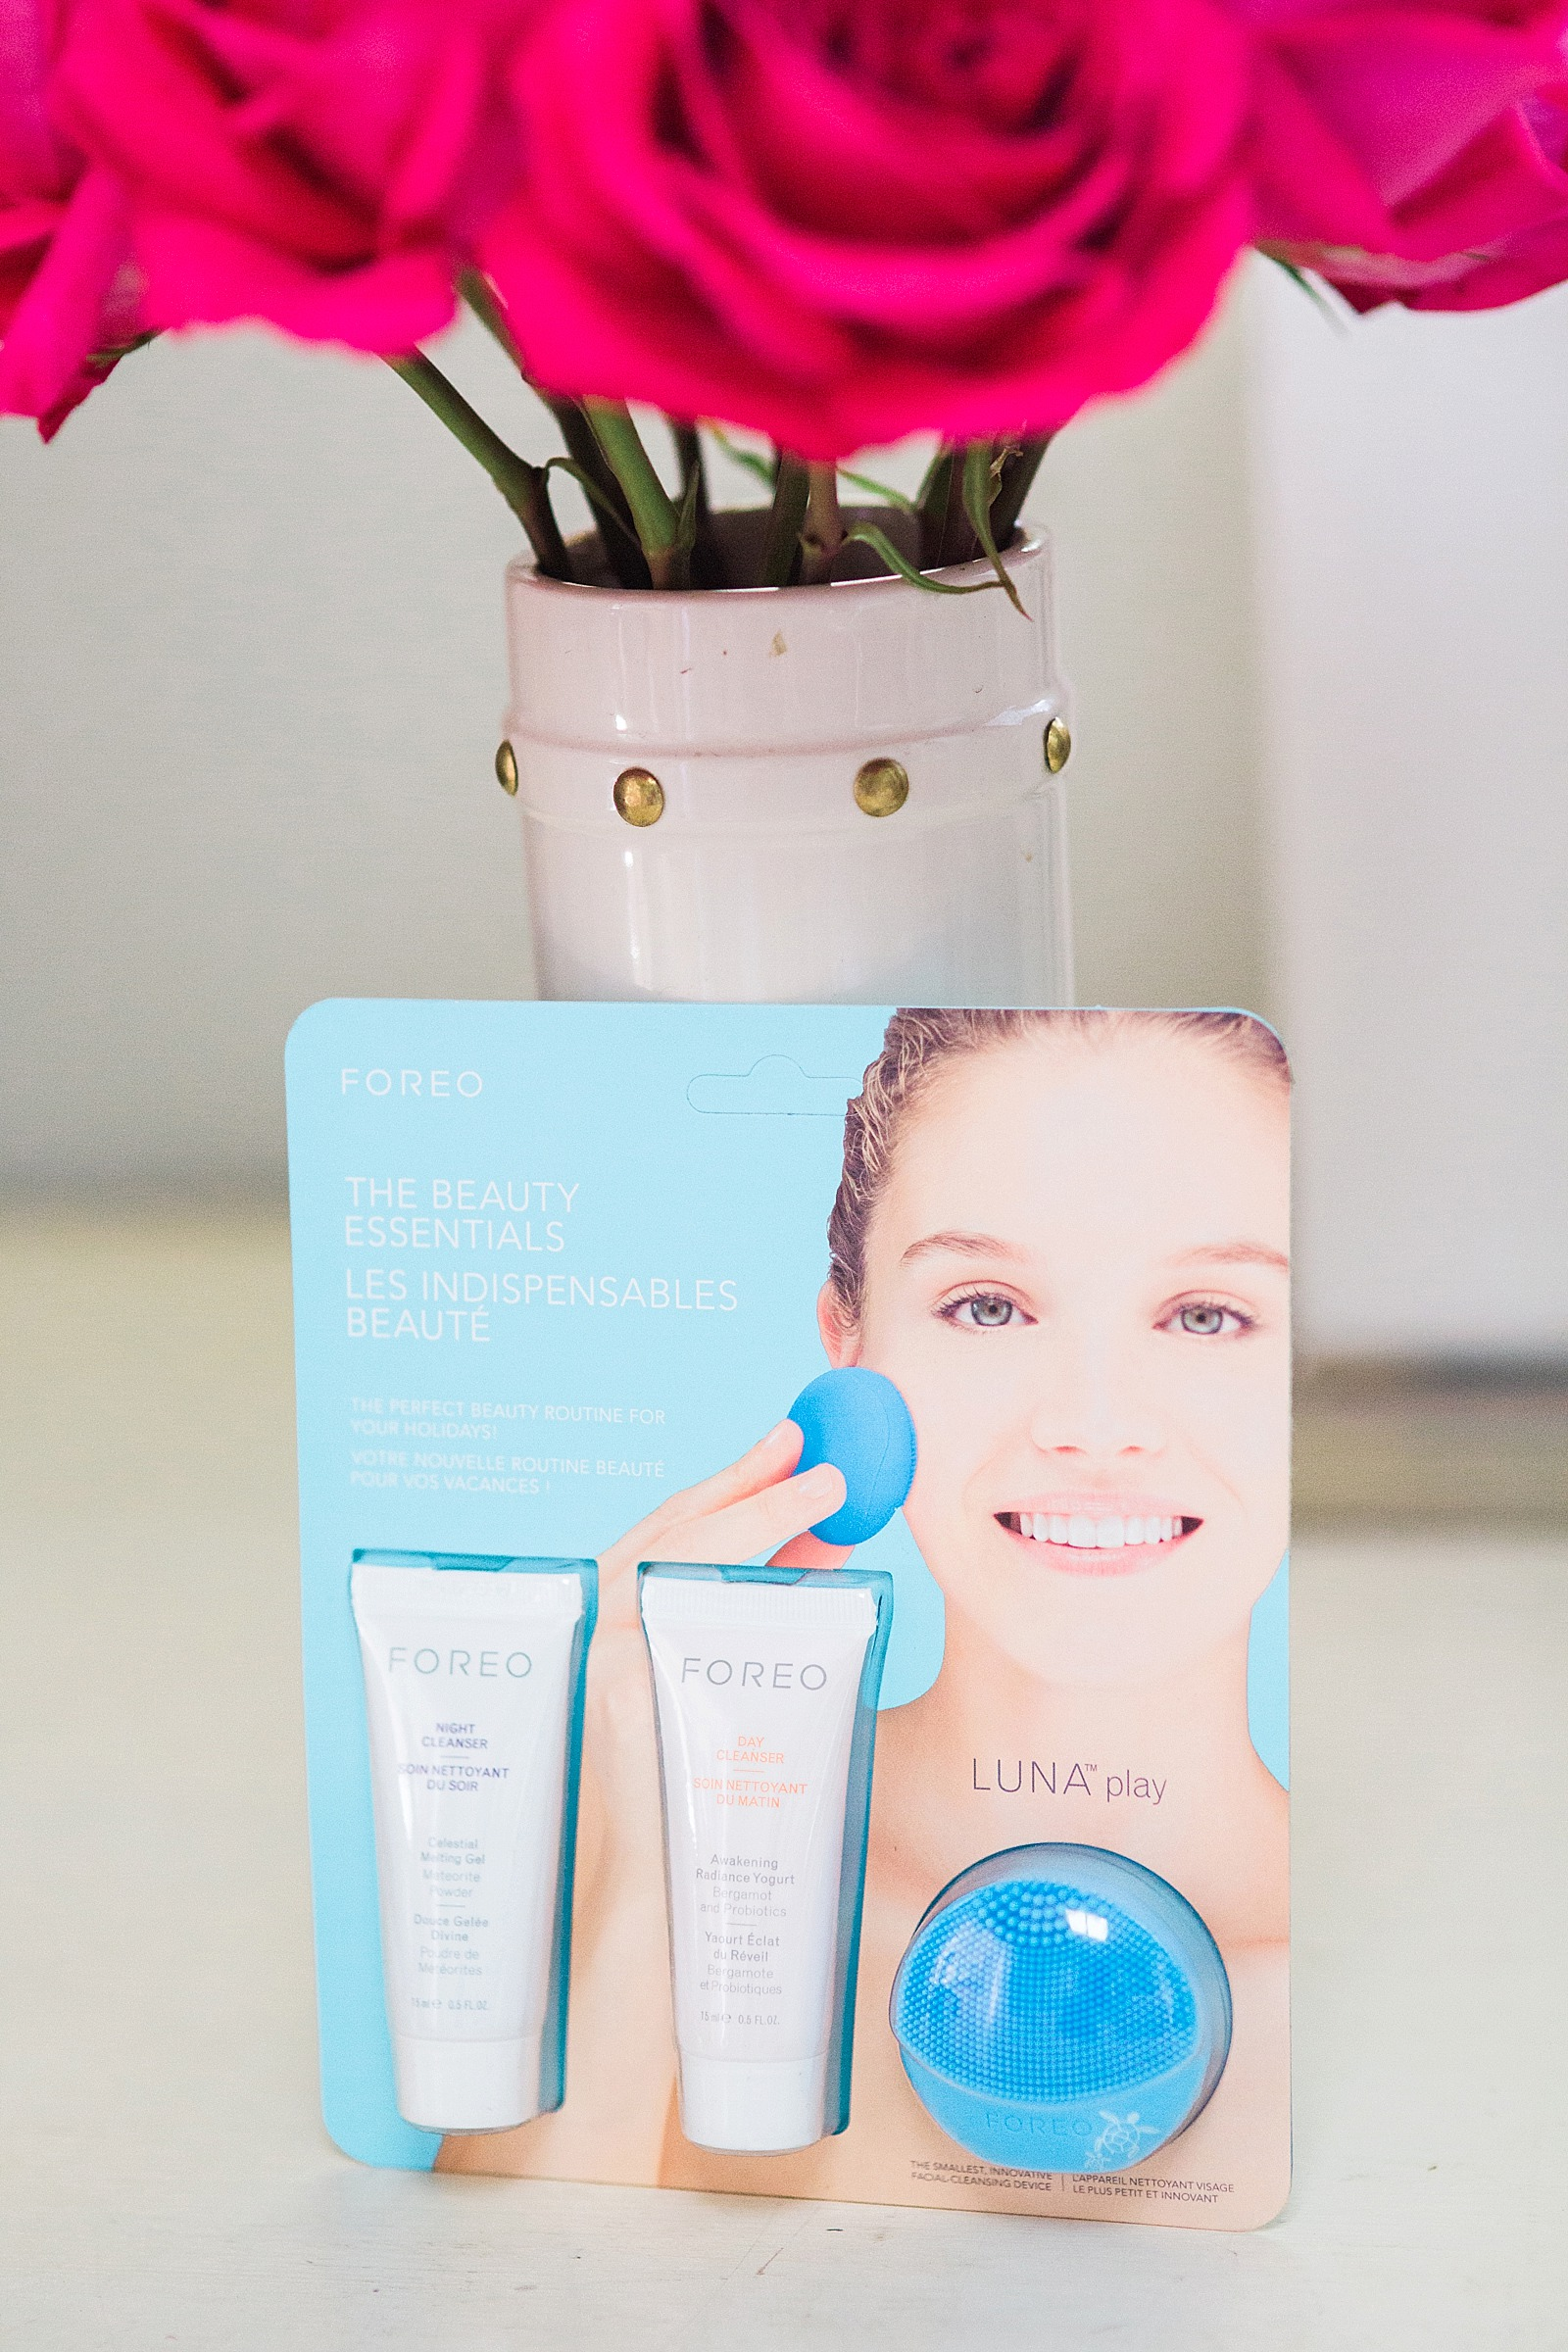 diana-elizabeth-blog-foreo-issa-luna-review-electric-toothbrush-facial-cleansing-device-9761